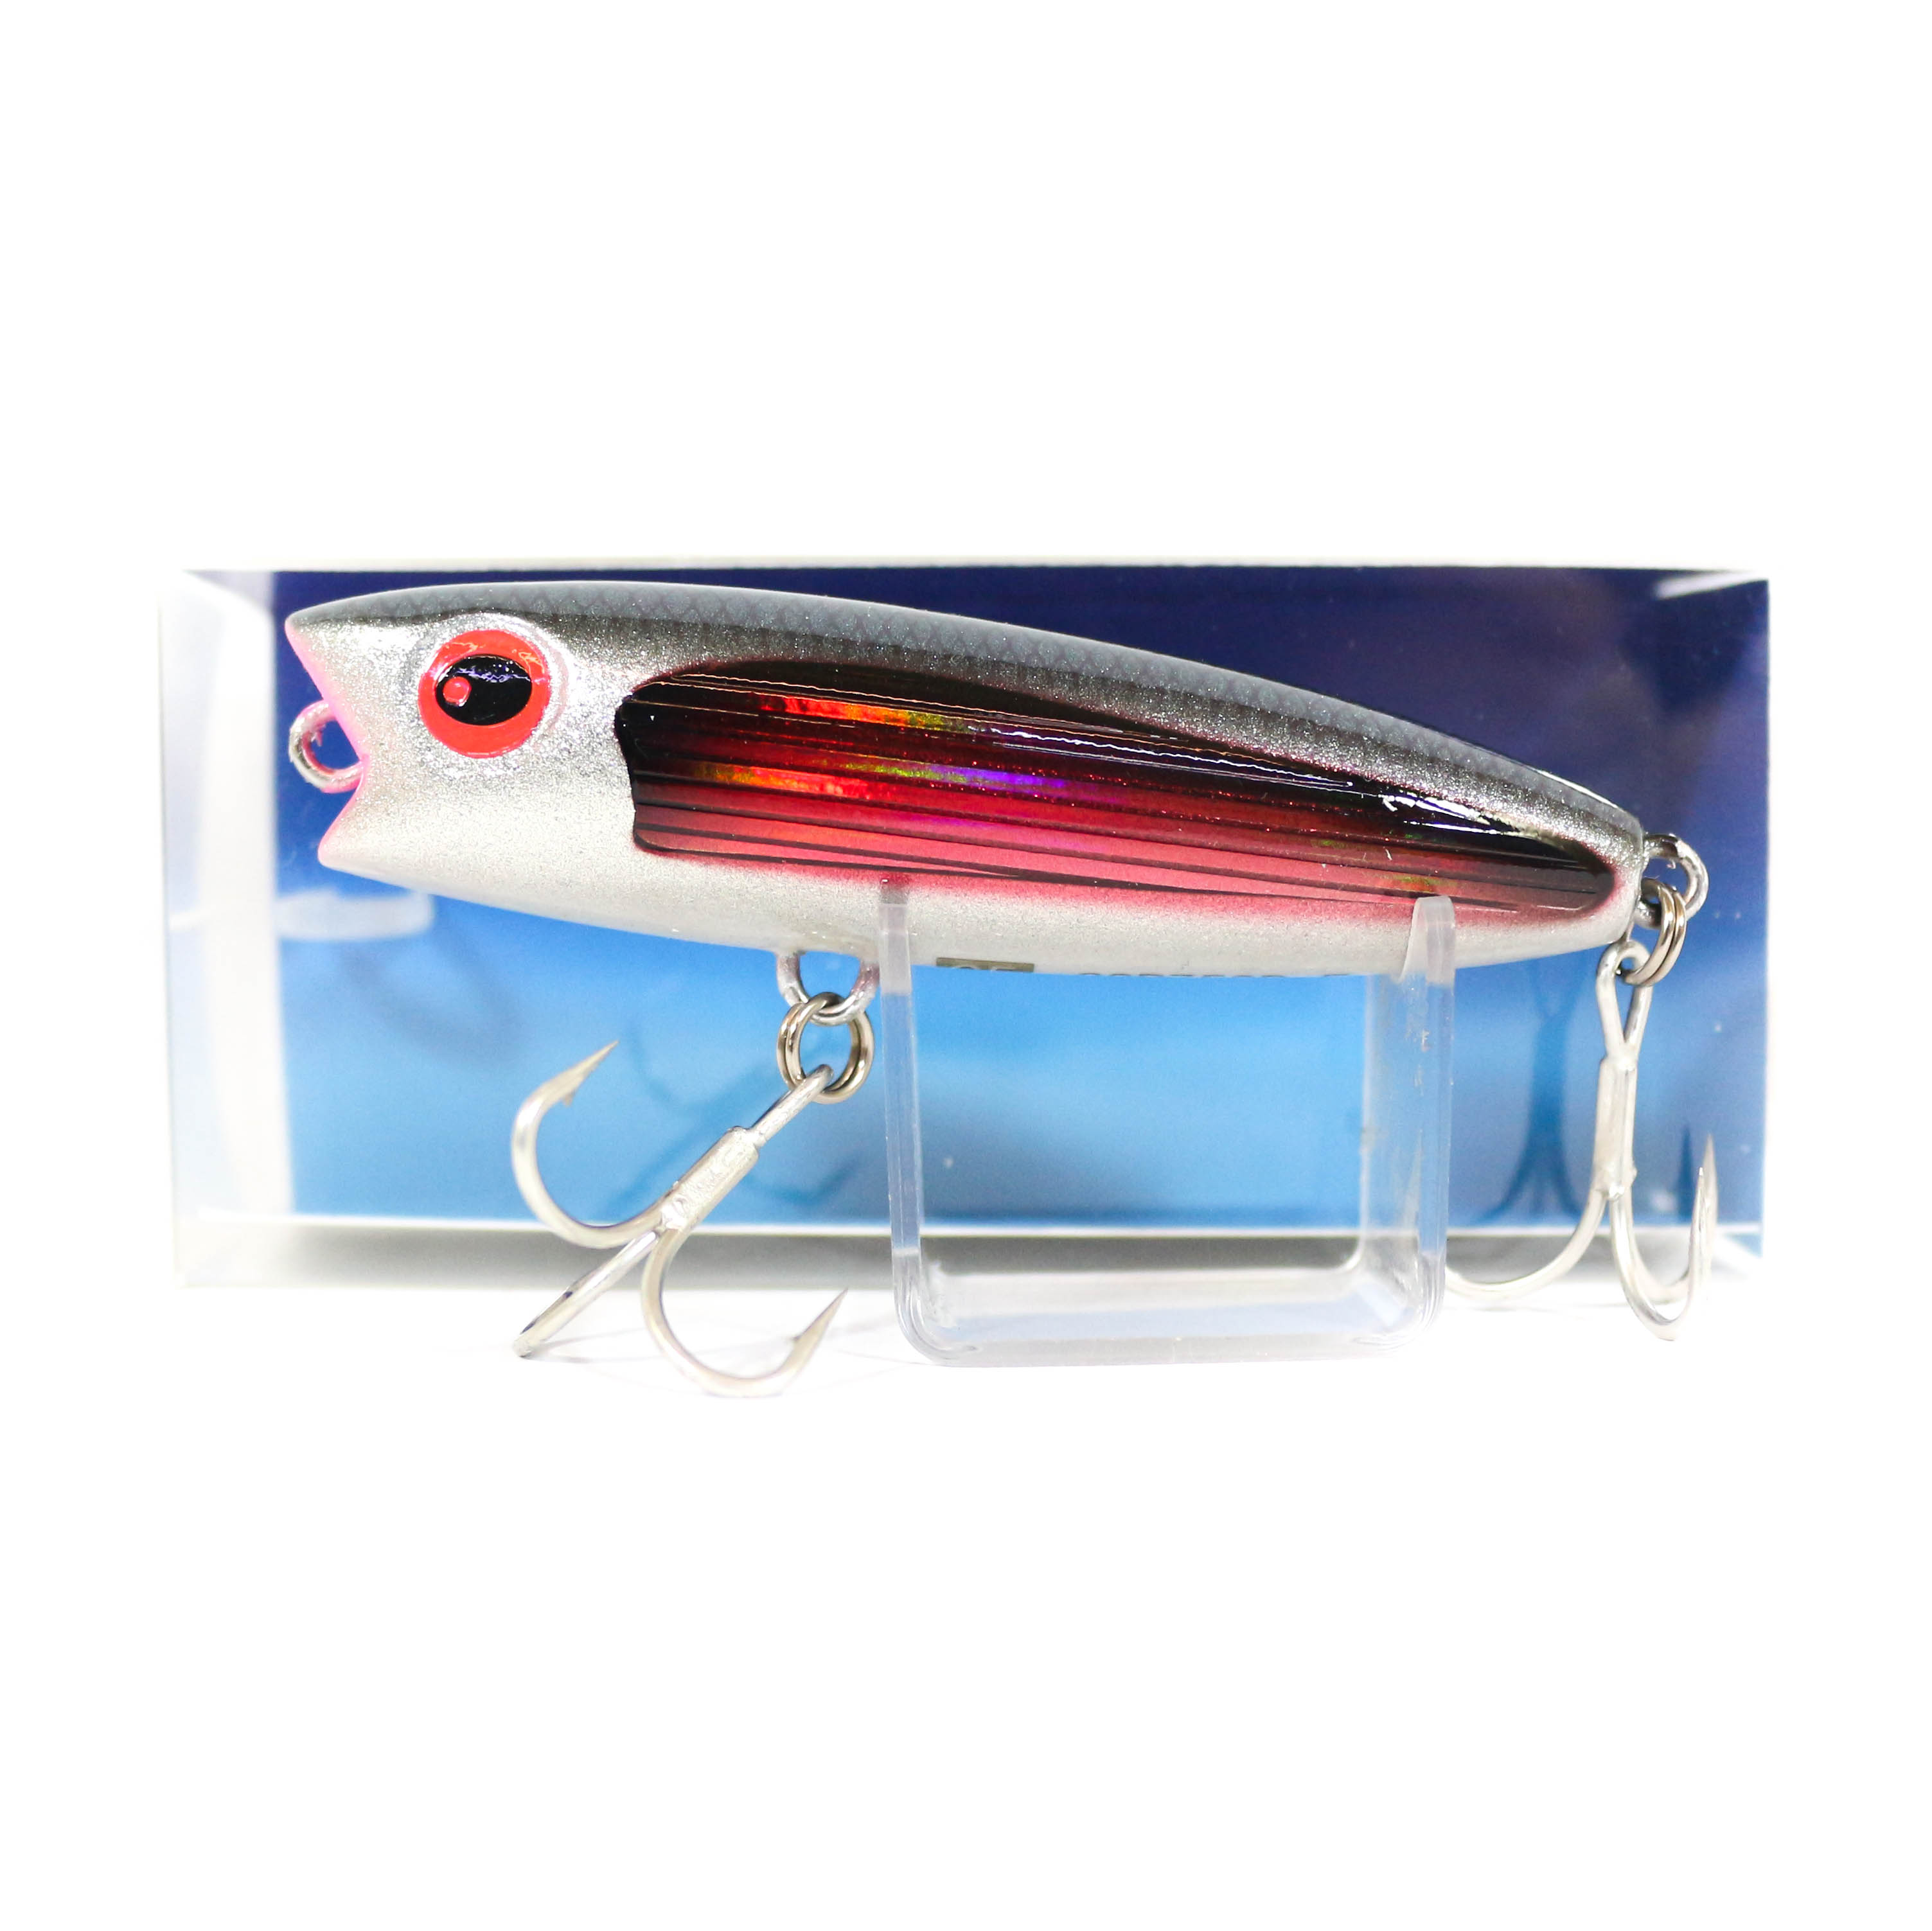 FCL Labo Stick Bait CSP 75 SPF Floating Lure DBRT (4298)